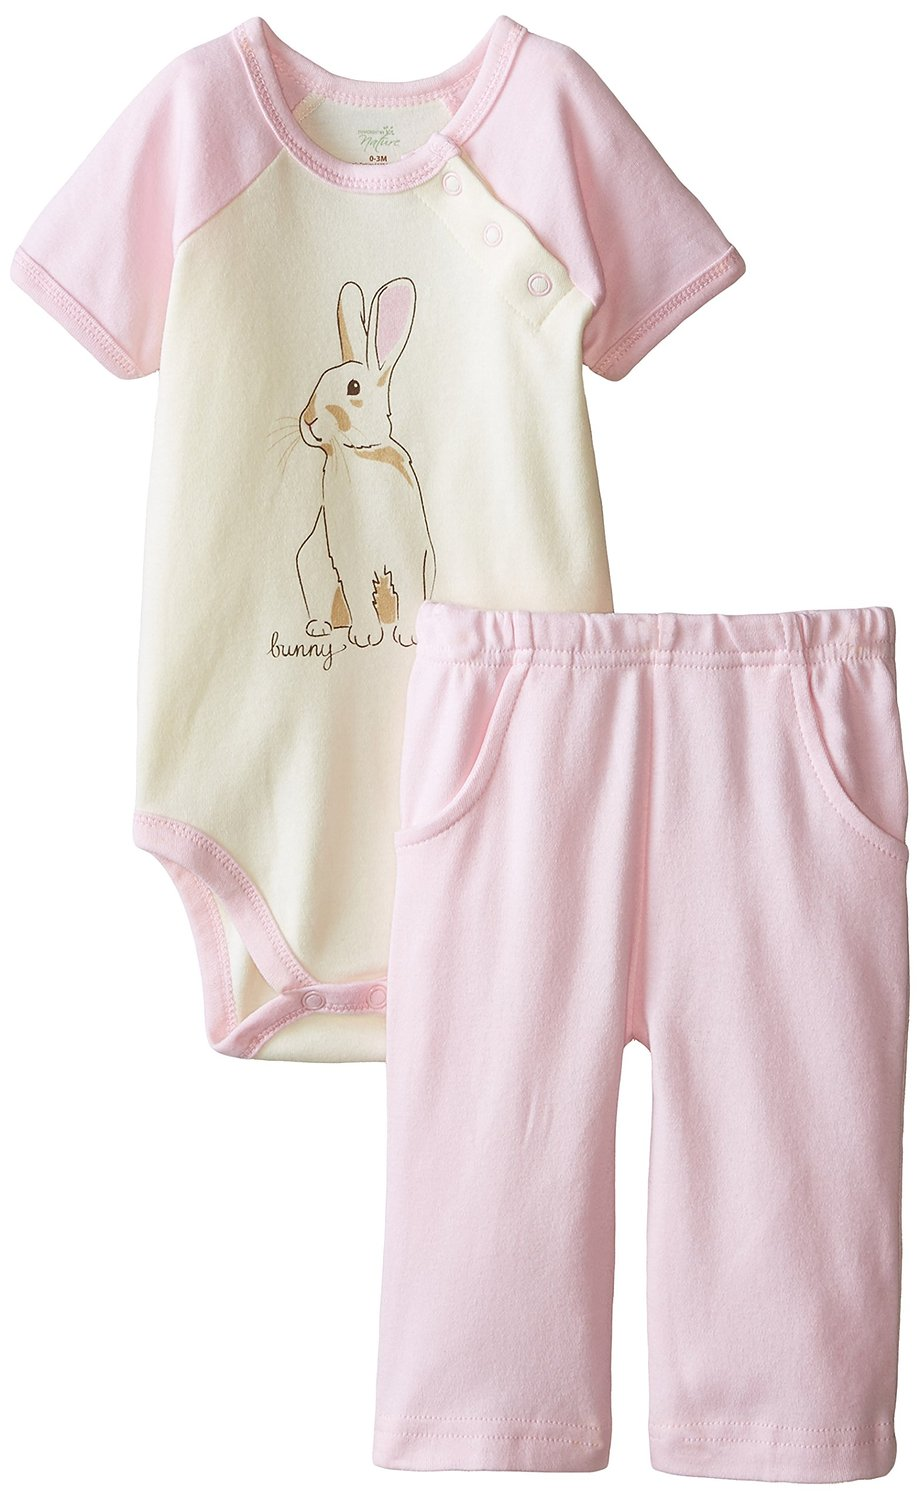 Touched by Nature Baby Organic Cotton Bodysuit Pant, 2 Piece Set